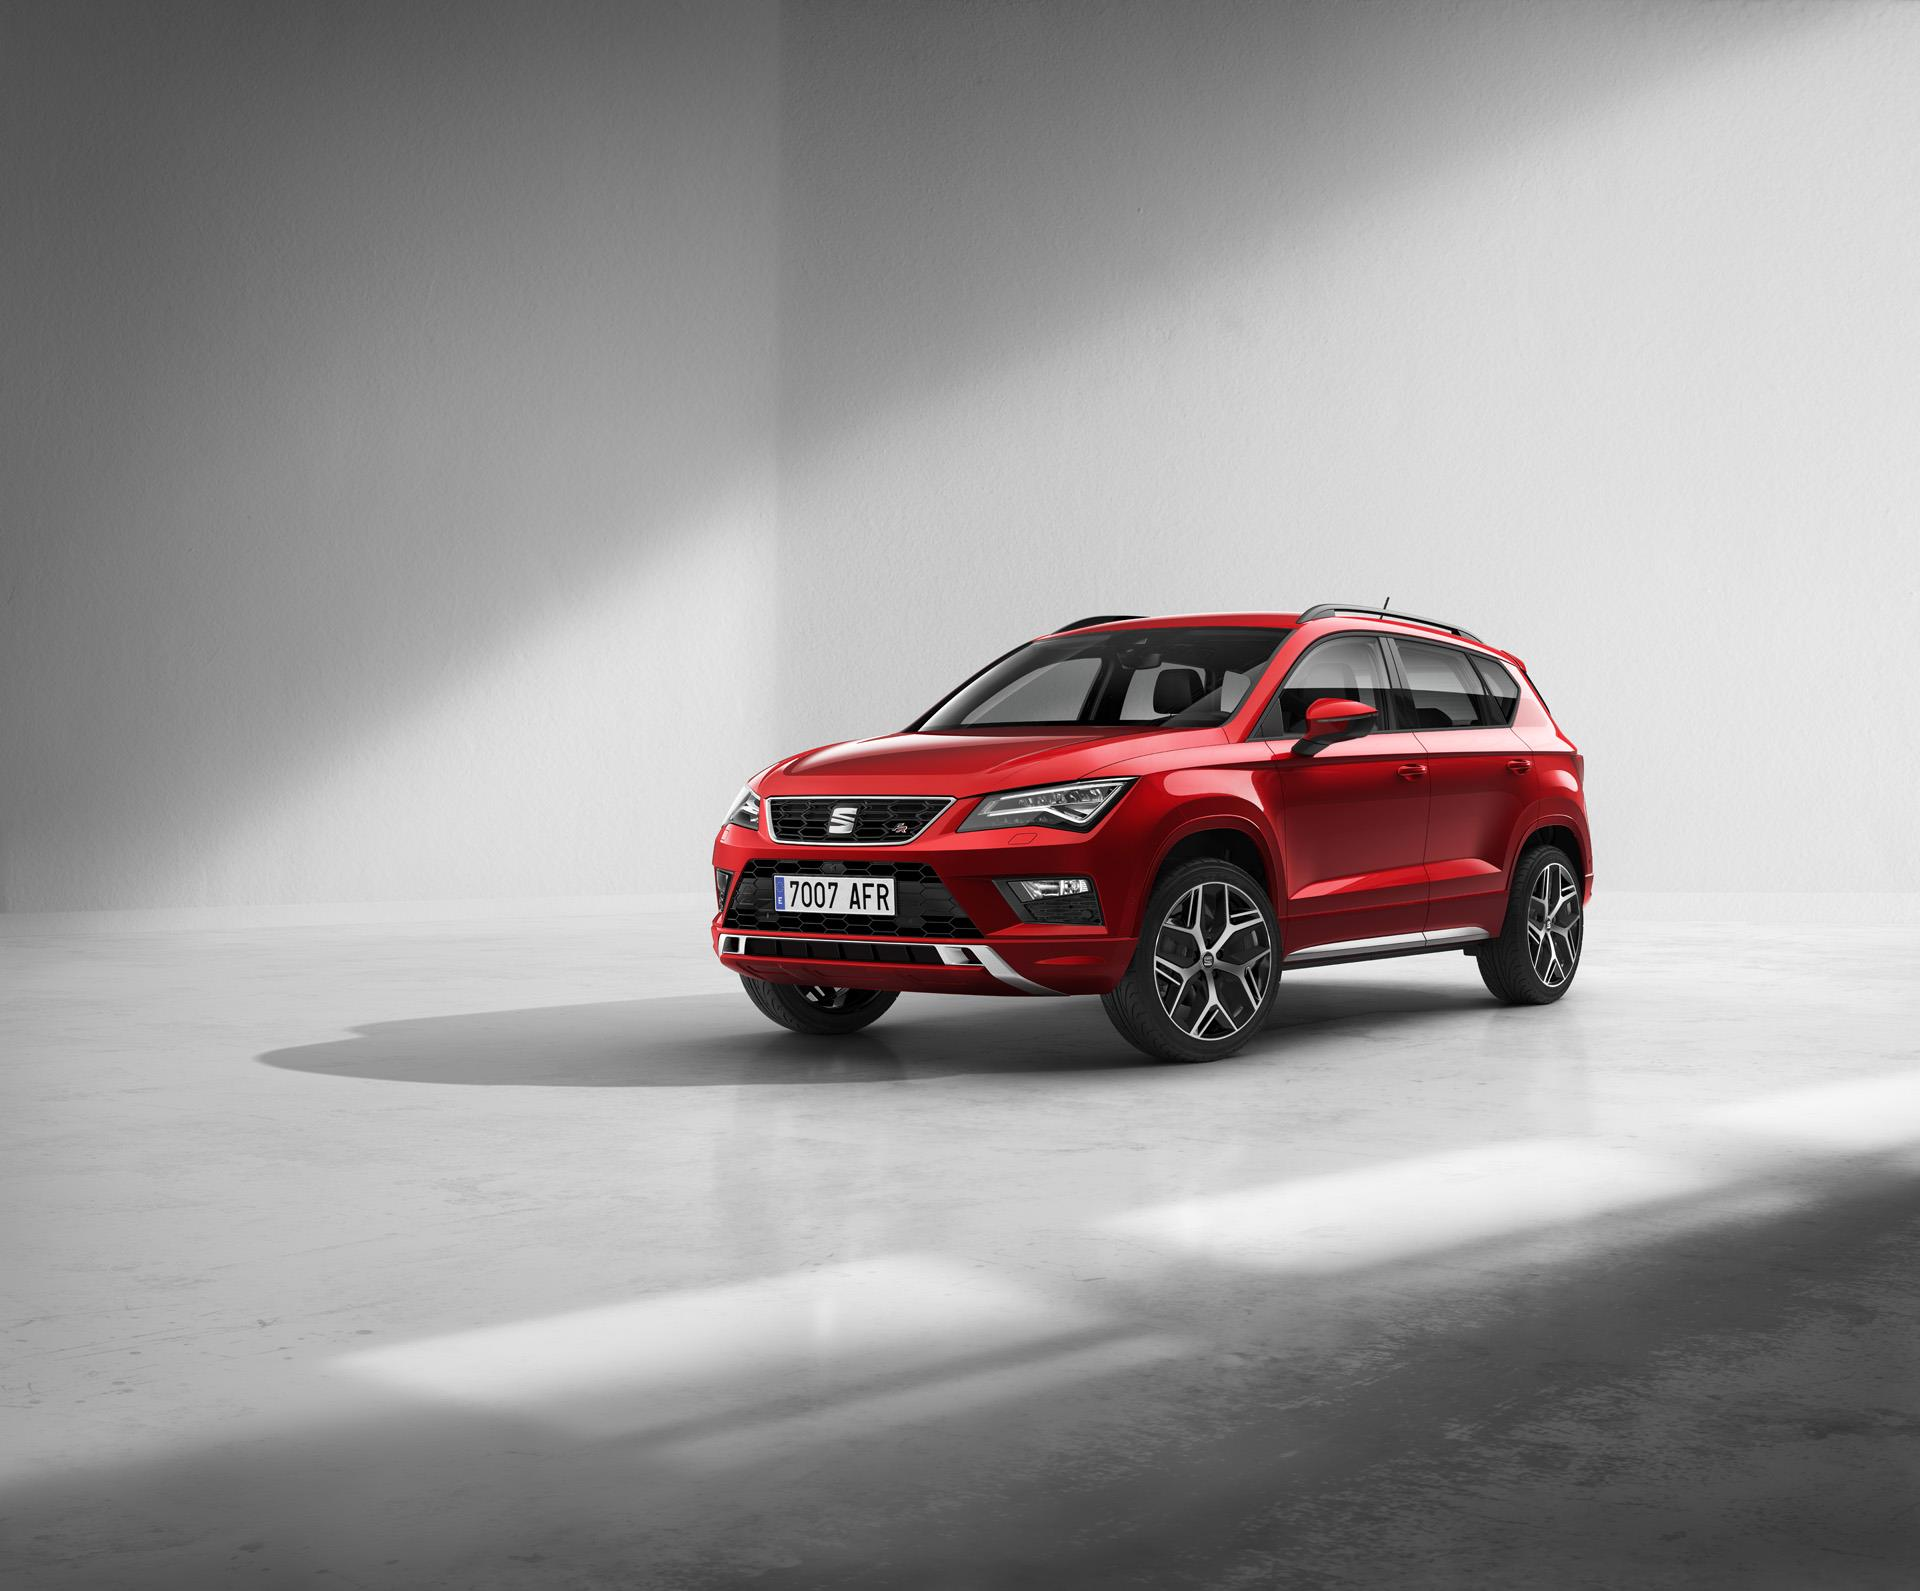 2017 Seat Ateca Fr News And Information Conceptcarzcom